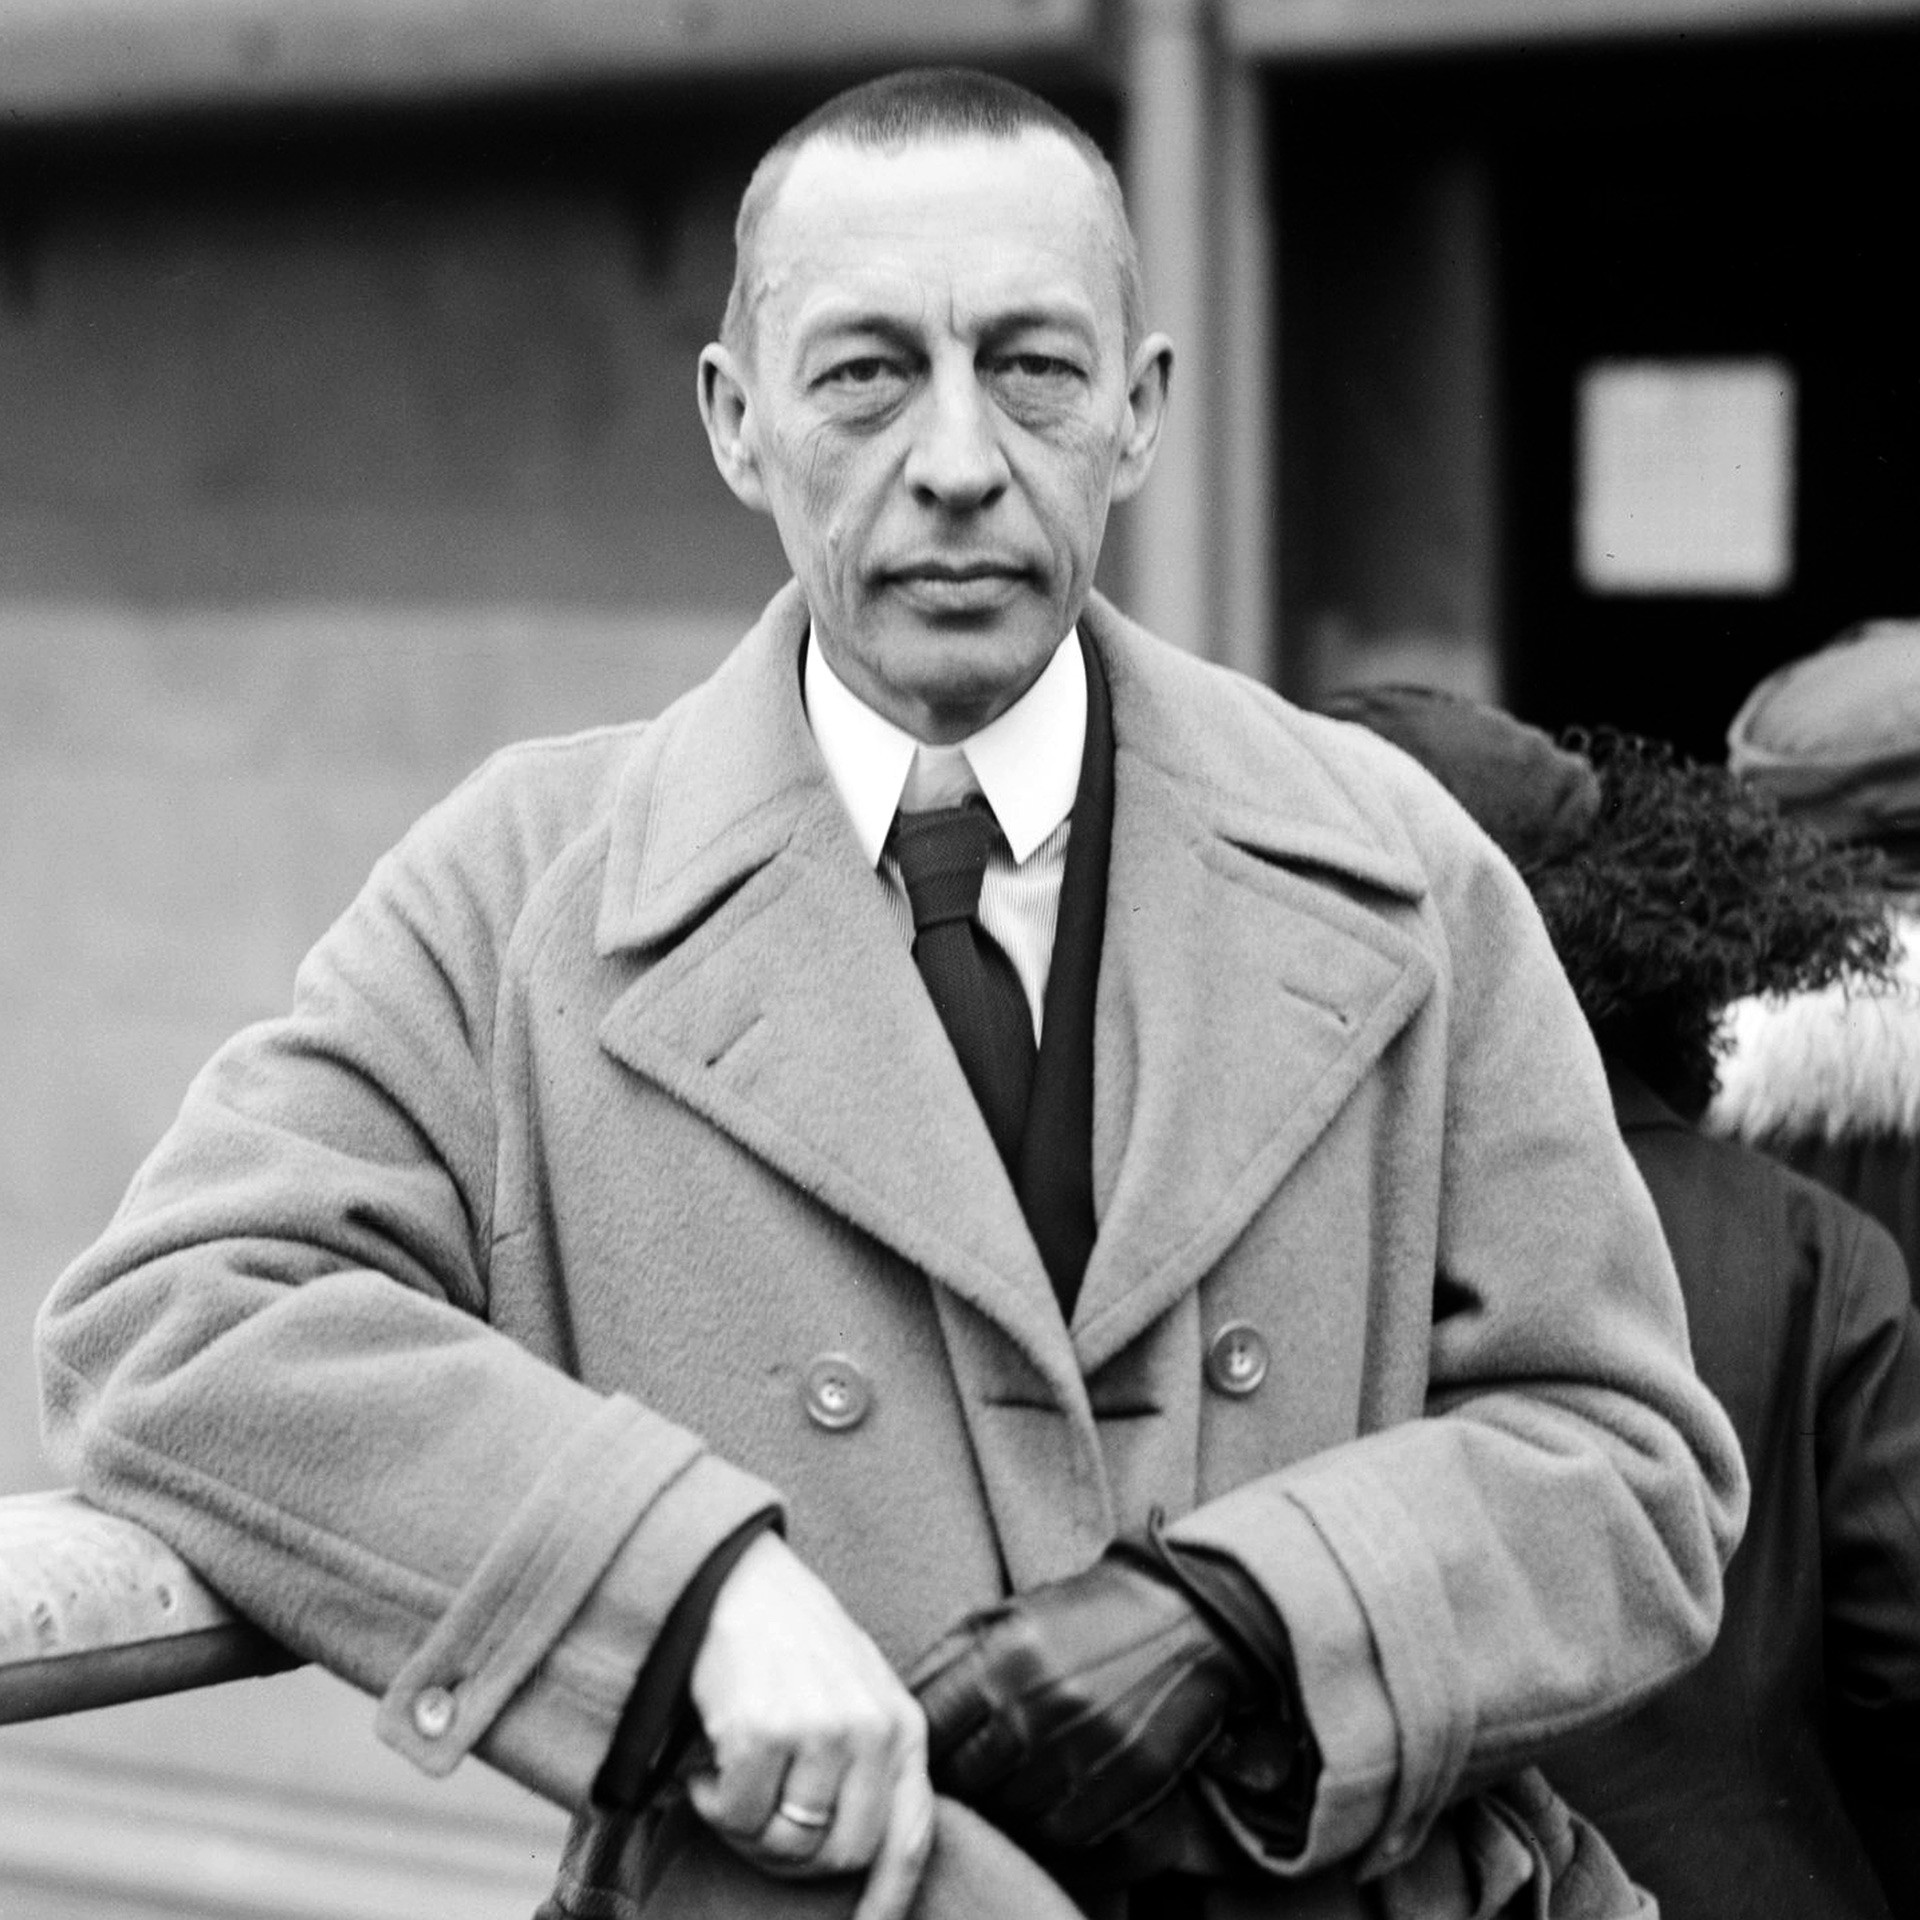 Sergei Rachmaninoff was famous both for his work as a composer and for his outstanding performances as a pianist. After the revolution he remained in great request, but only abroad.